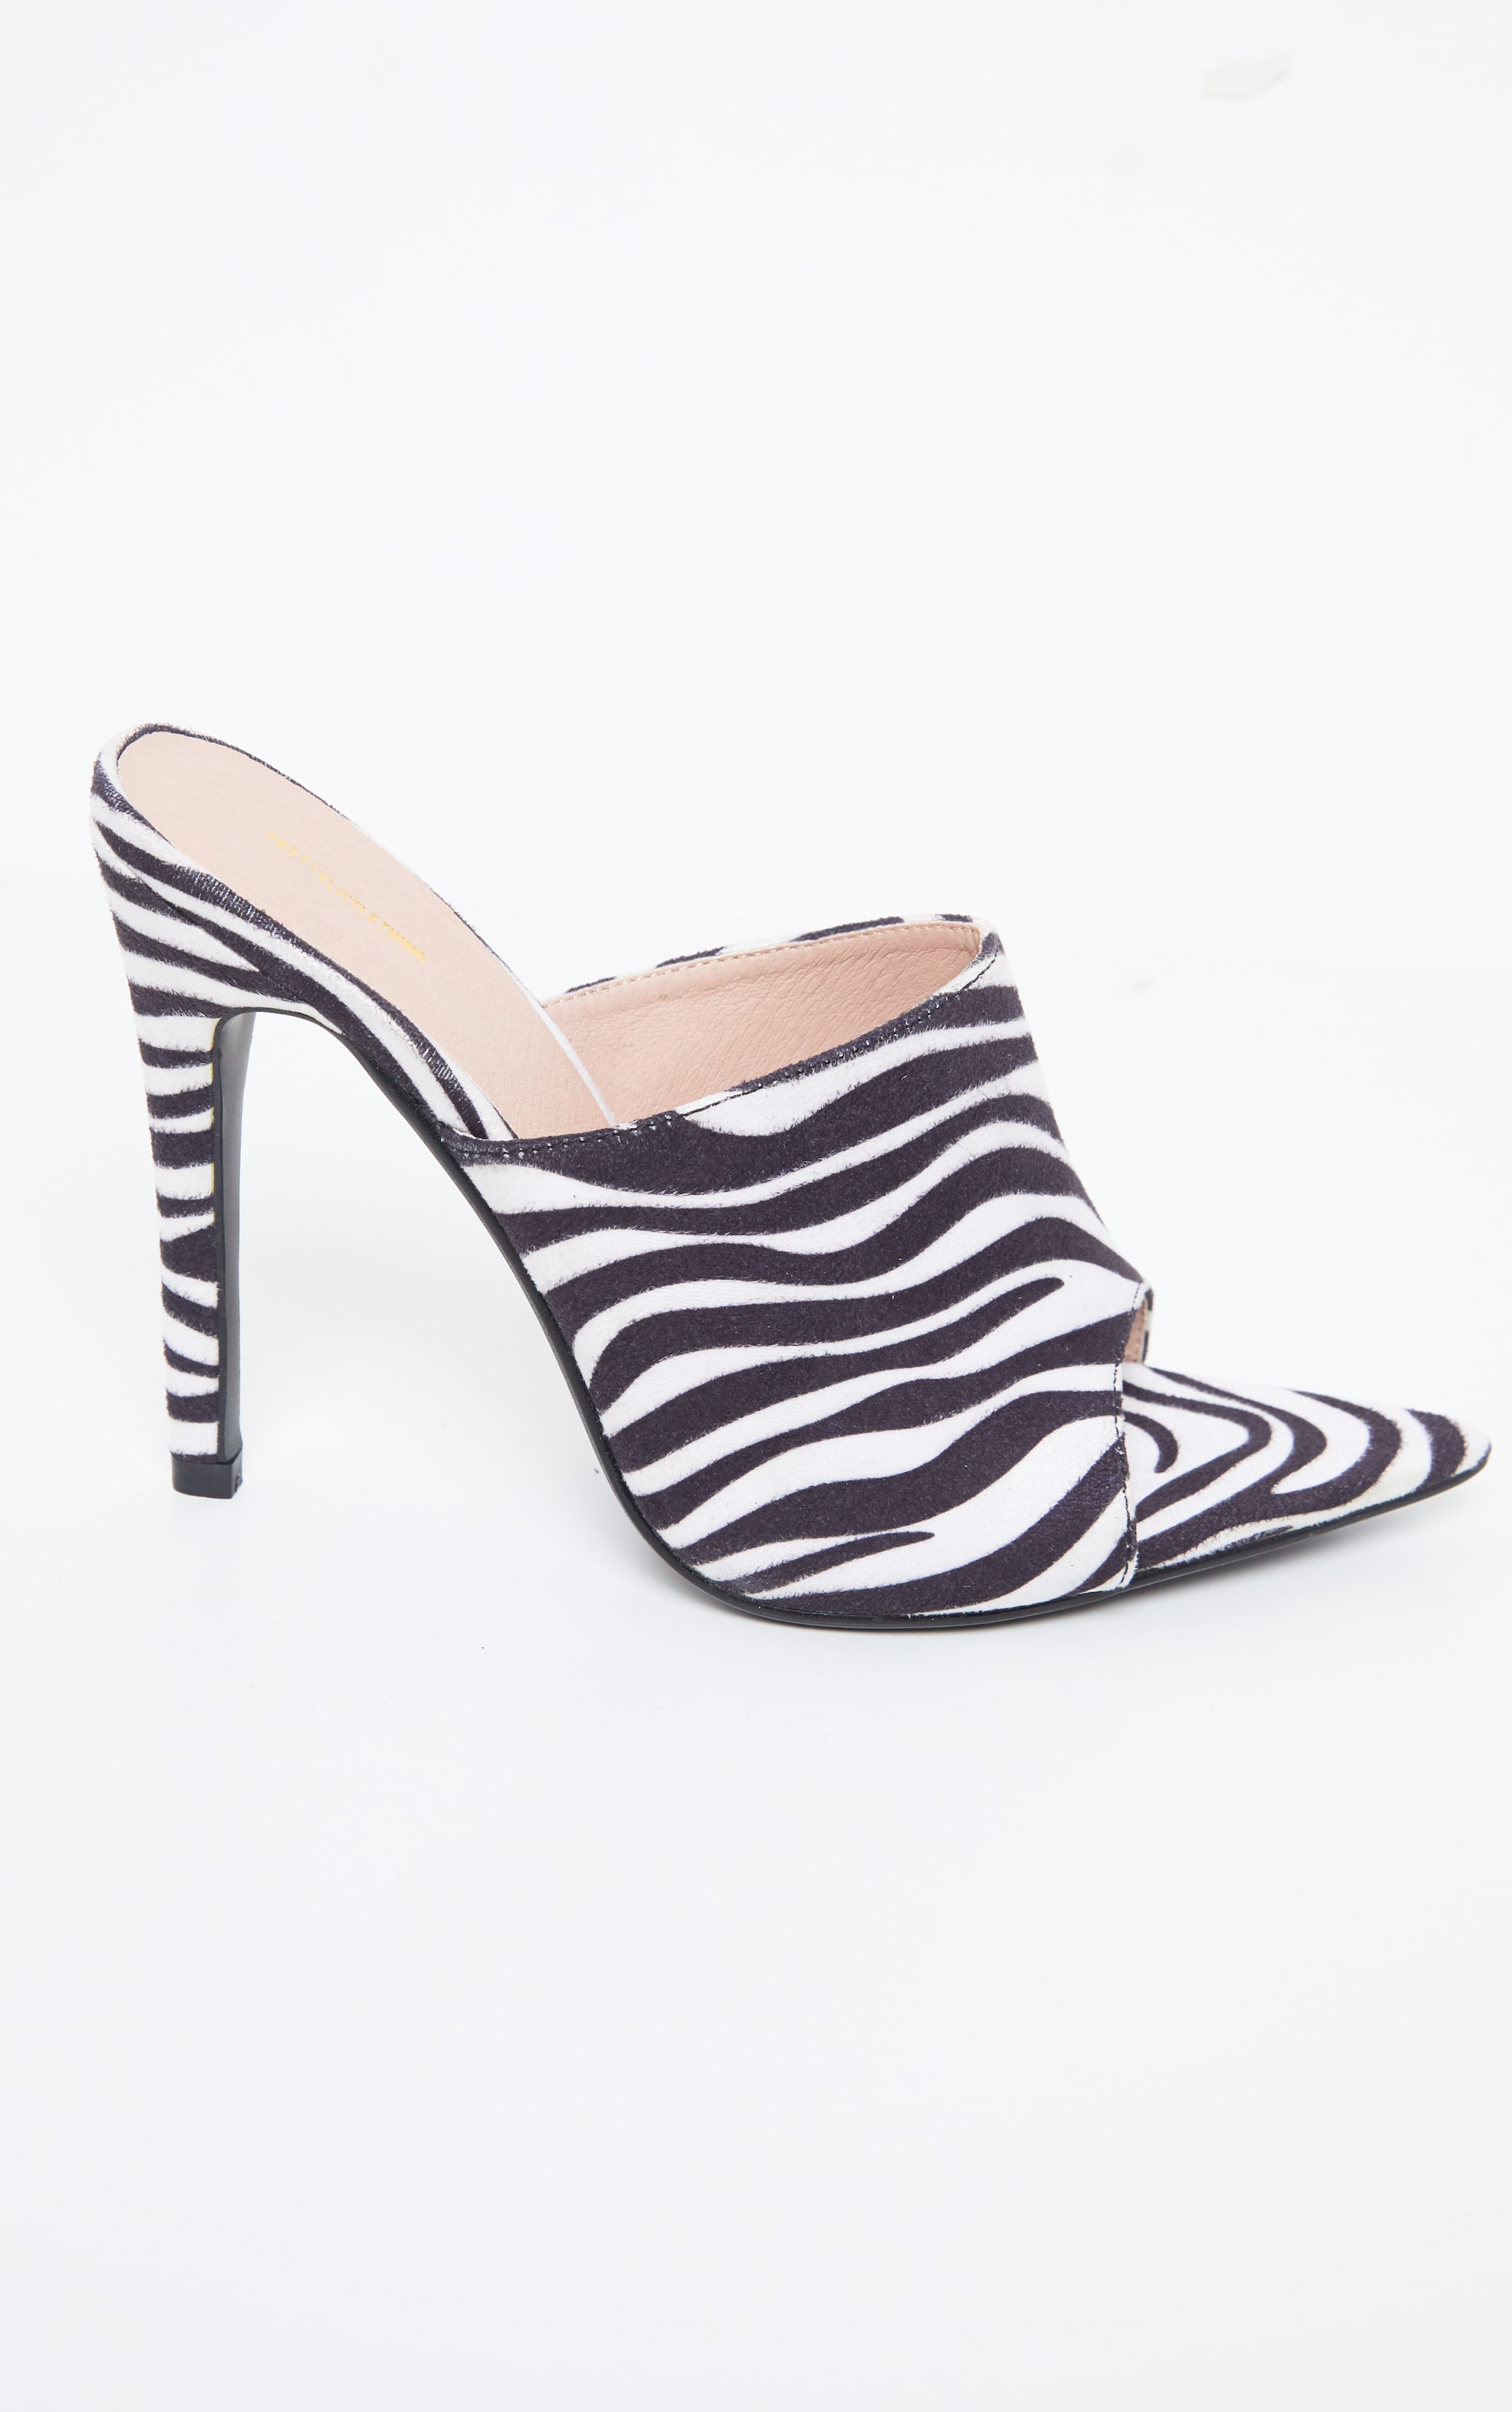 Zebra Extreme Point Toe Mule 5